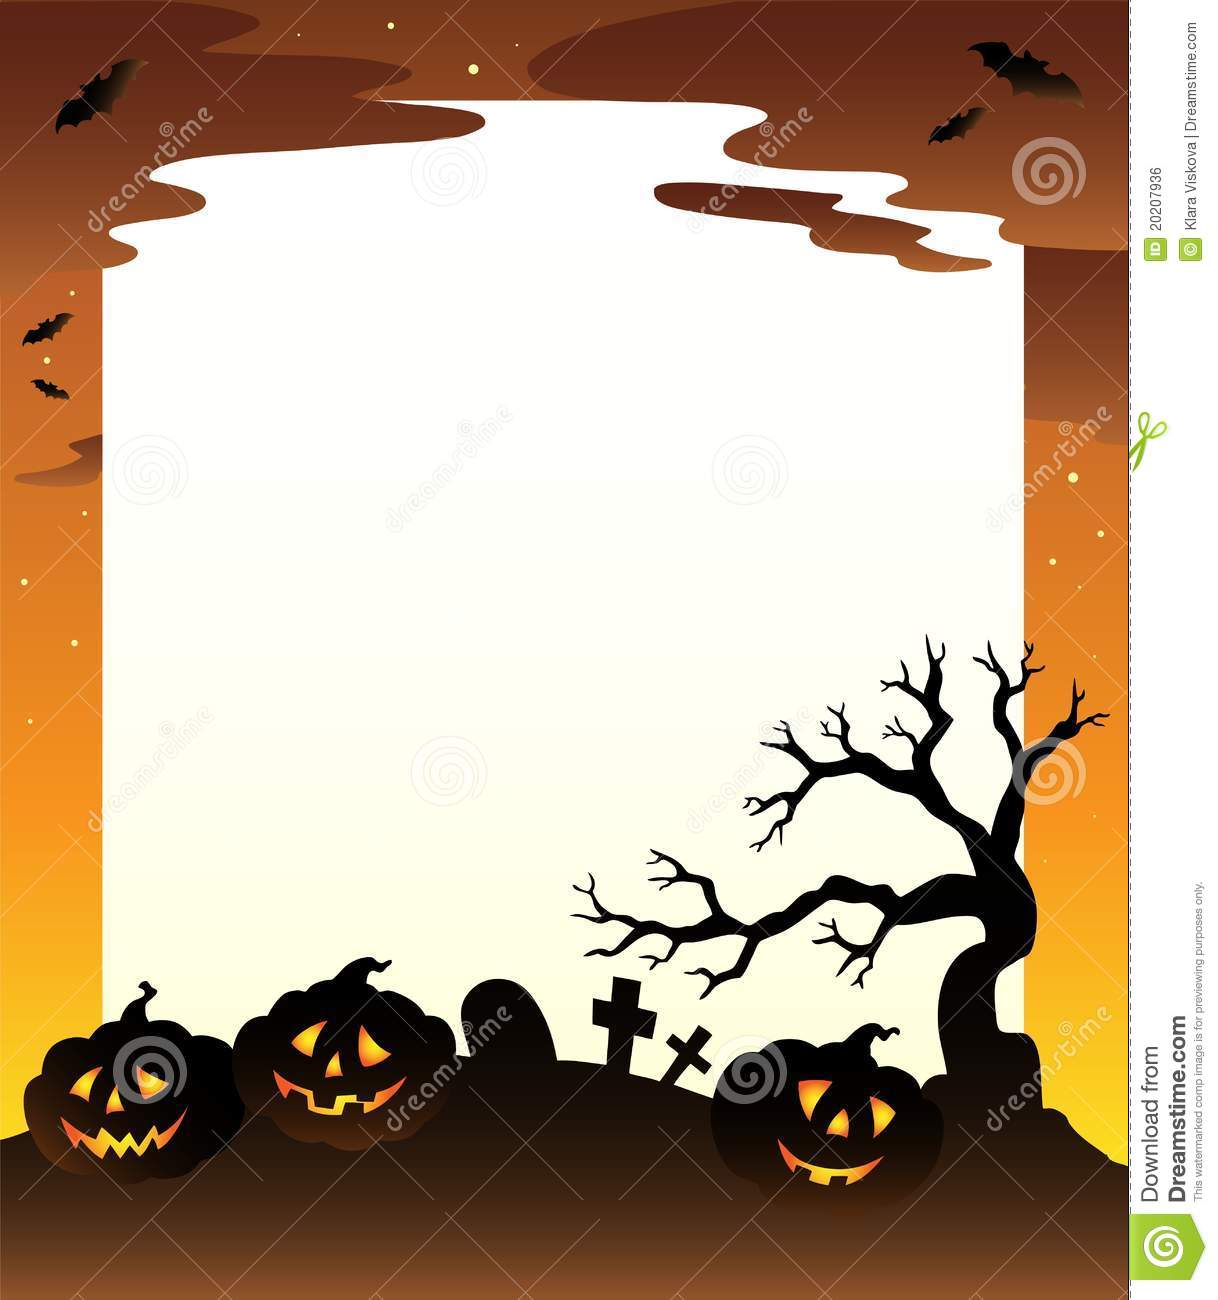 Frame With Halloween Scenery 1 Stock Vector - Illustration of design ...